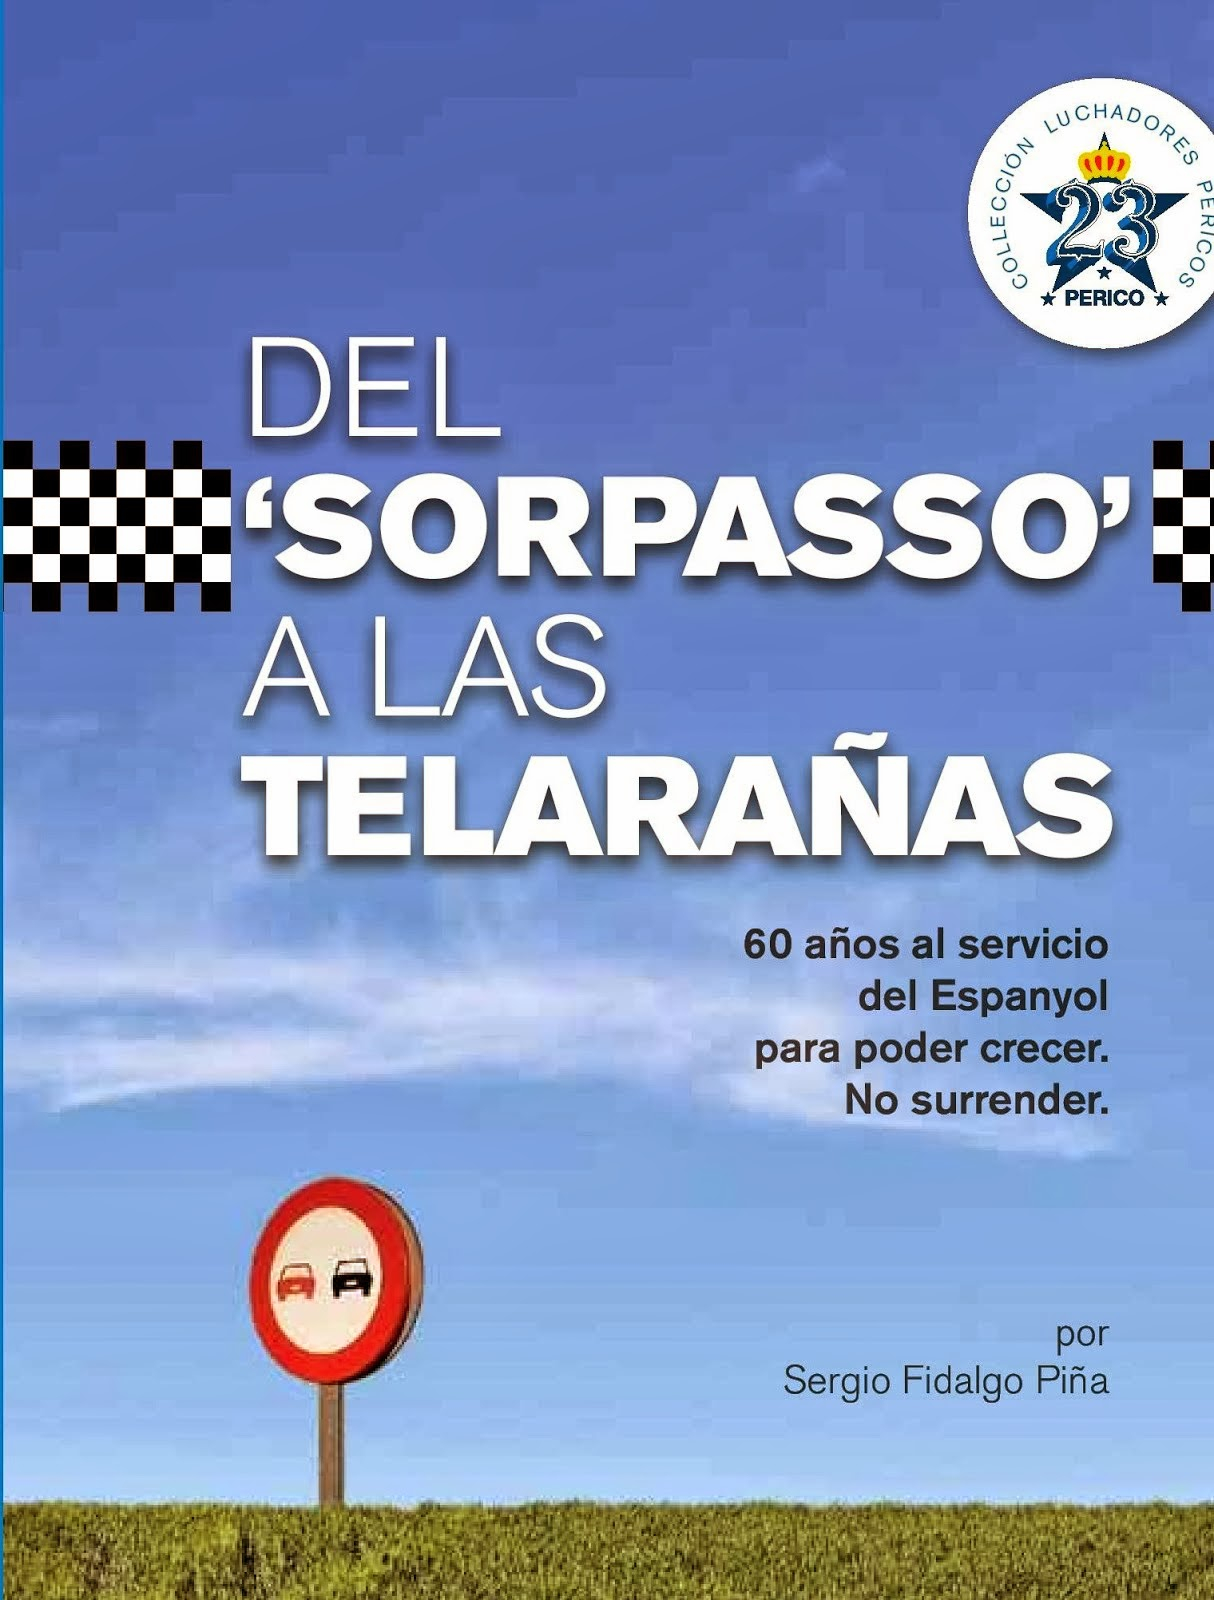 Del 'sorpasso' a las telarañas